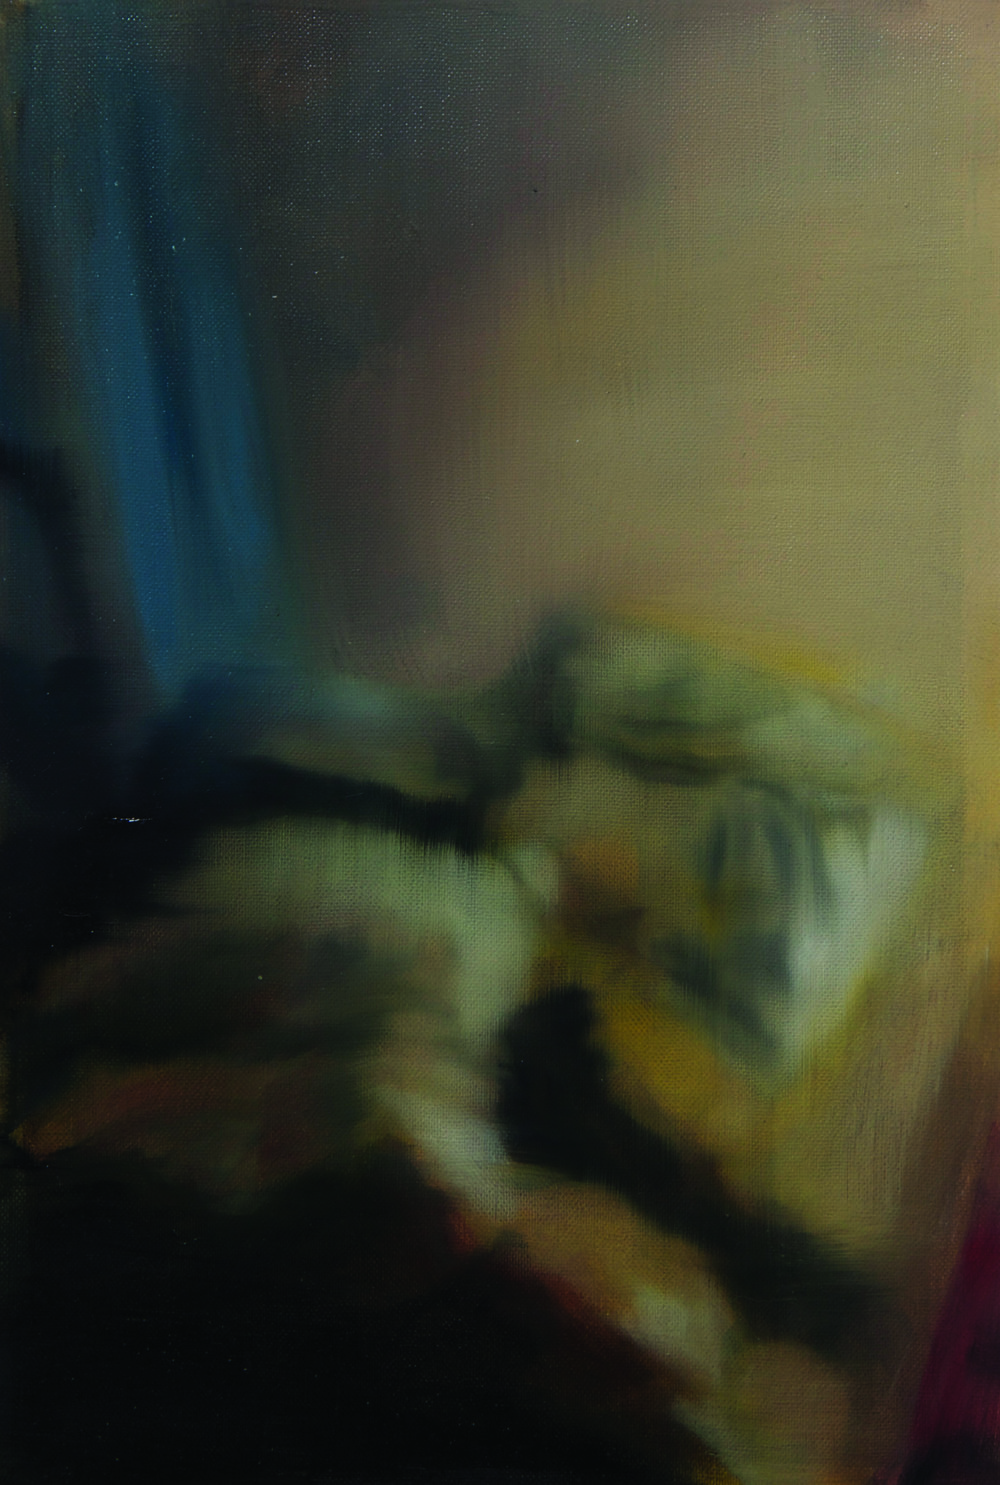 Bed Oil on linen (580x440) 2011